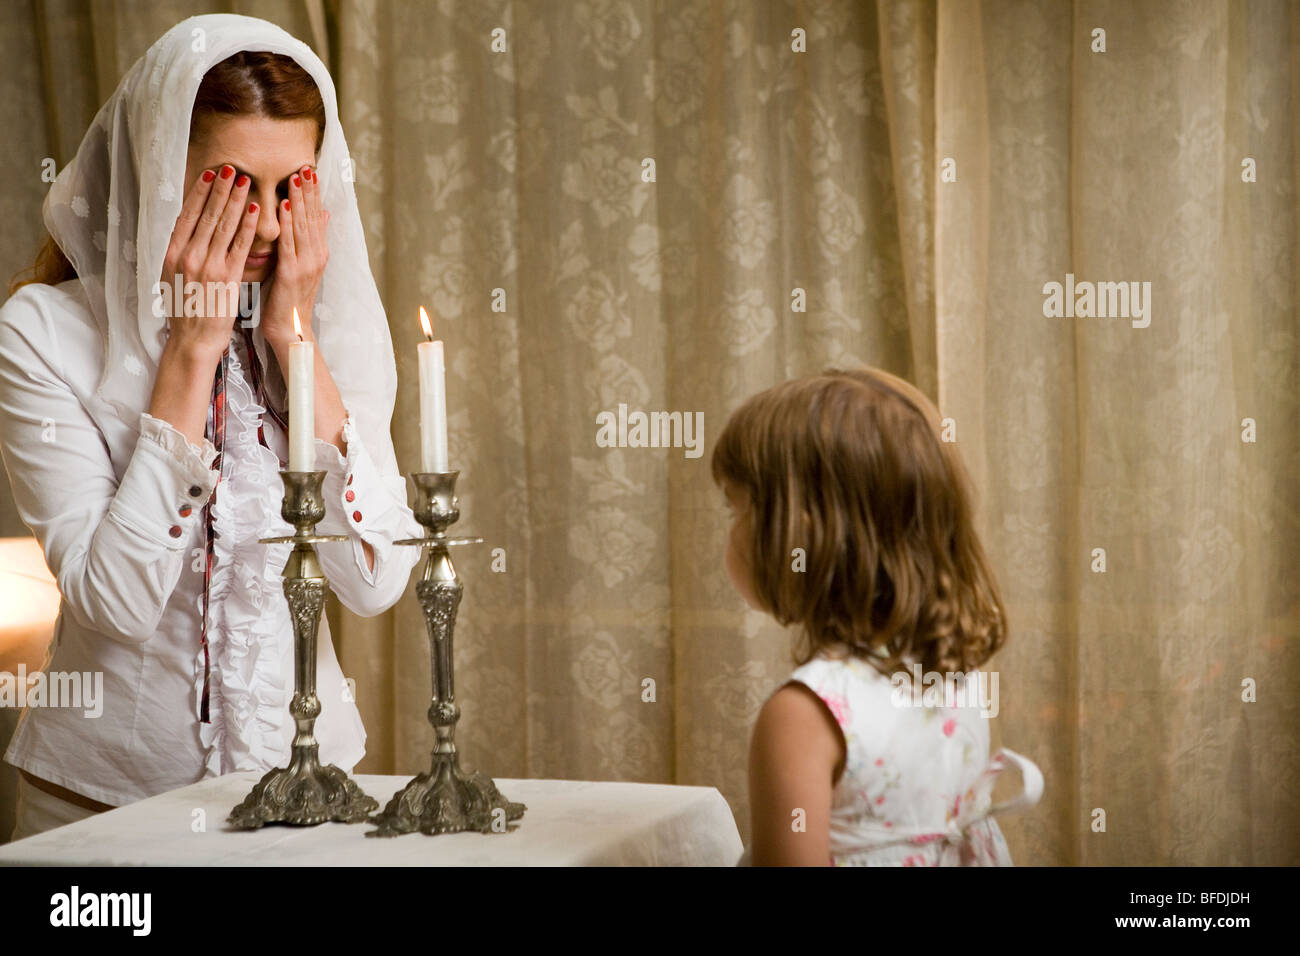 Mother and daughter lighting Shabbat candles. & Mother and daughter lighting Shabbat candles Stock Photo: 26730077 ...